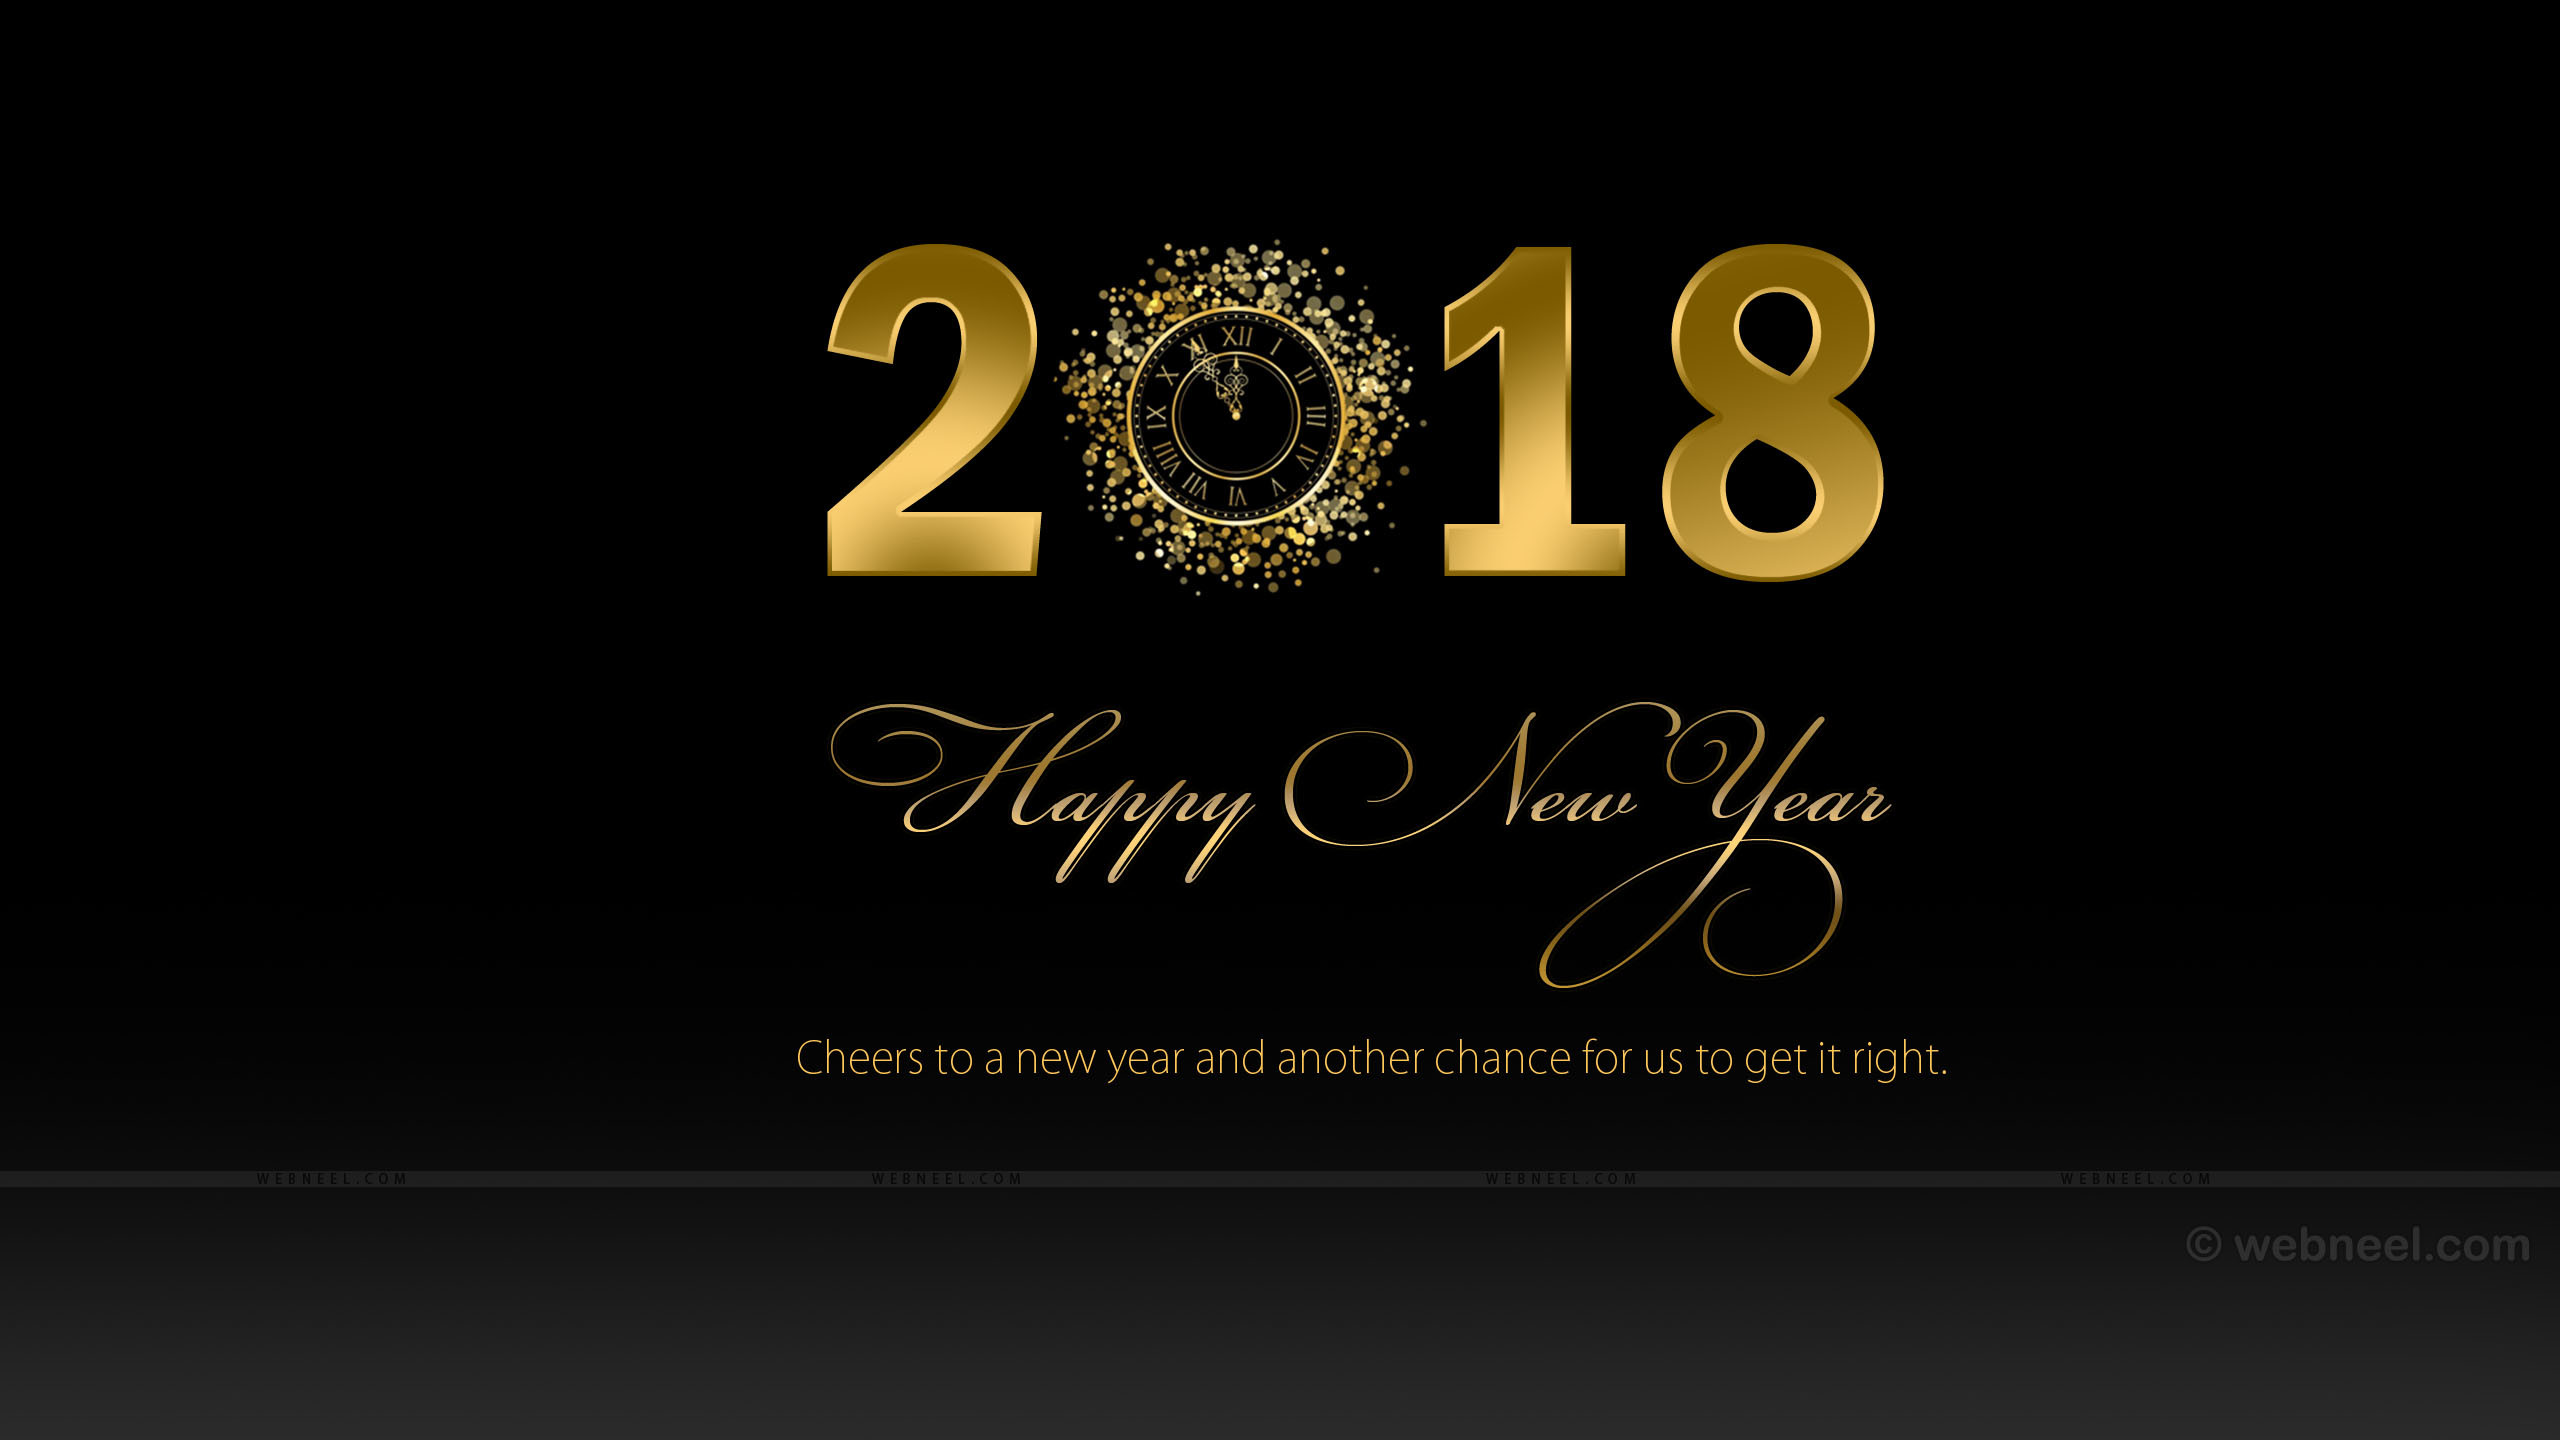 New Year, 2018 Wallpaper, Hd New Years Wallpapers, - New Year Wallpaper Hd 2018 - HD Wallpaper